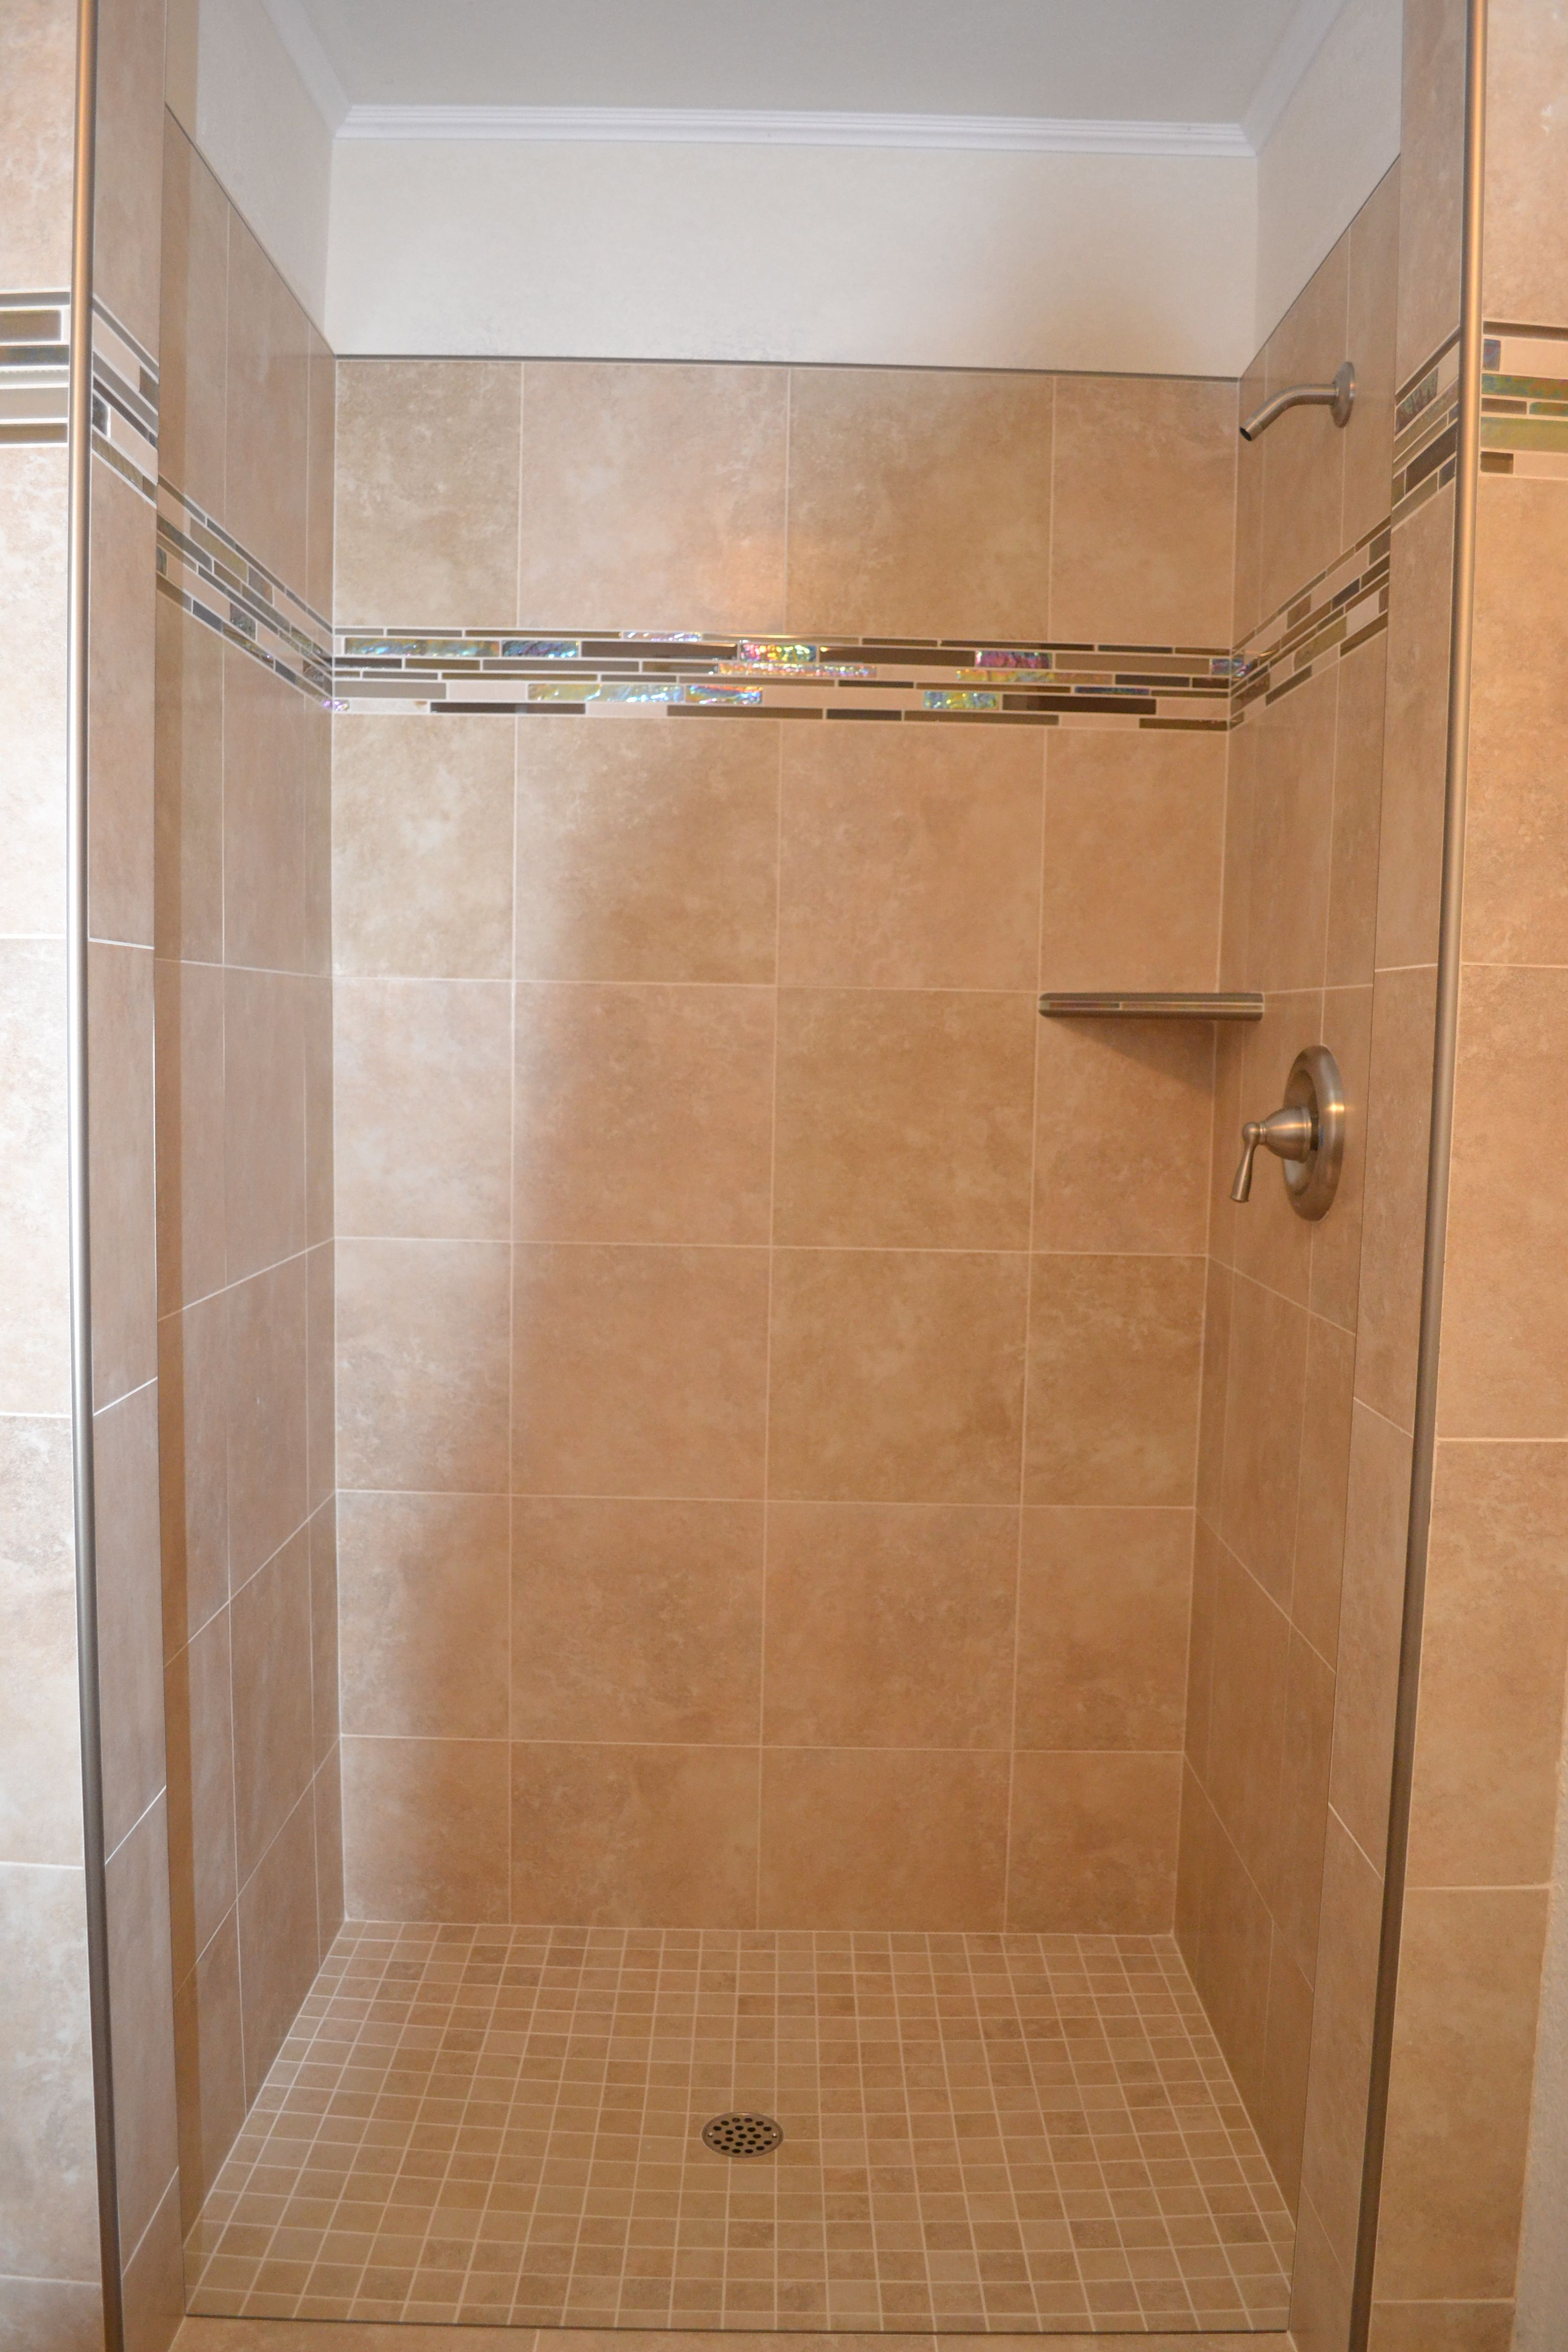 New shower / Marcus Marty Home Improvements / Schulter metal trim ...